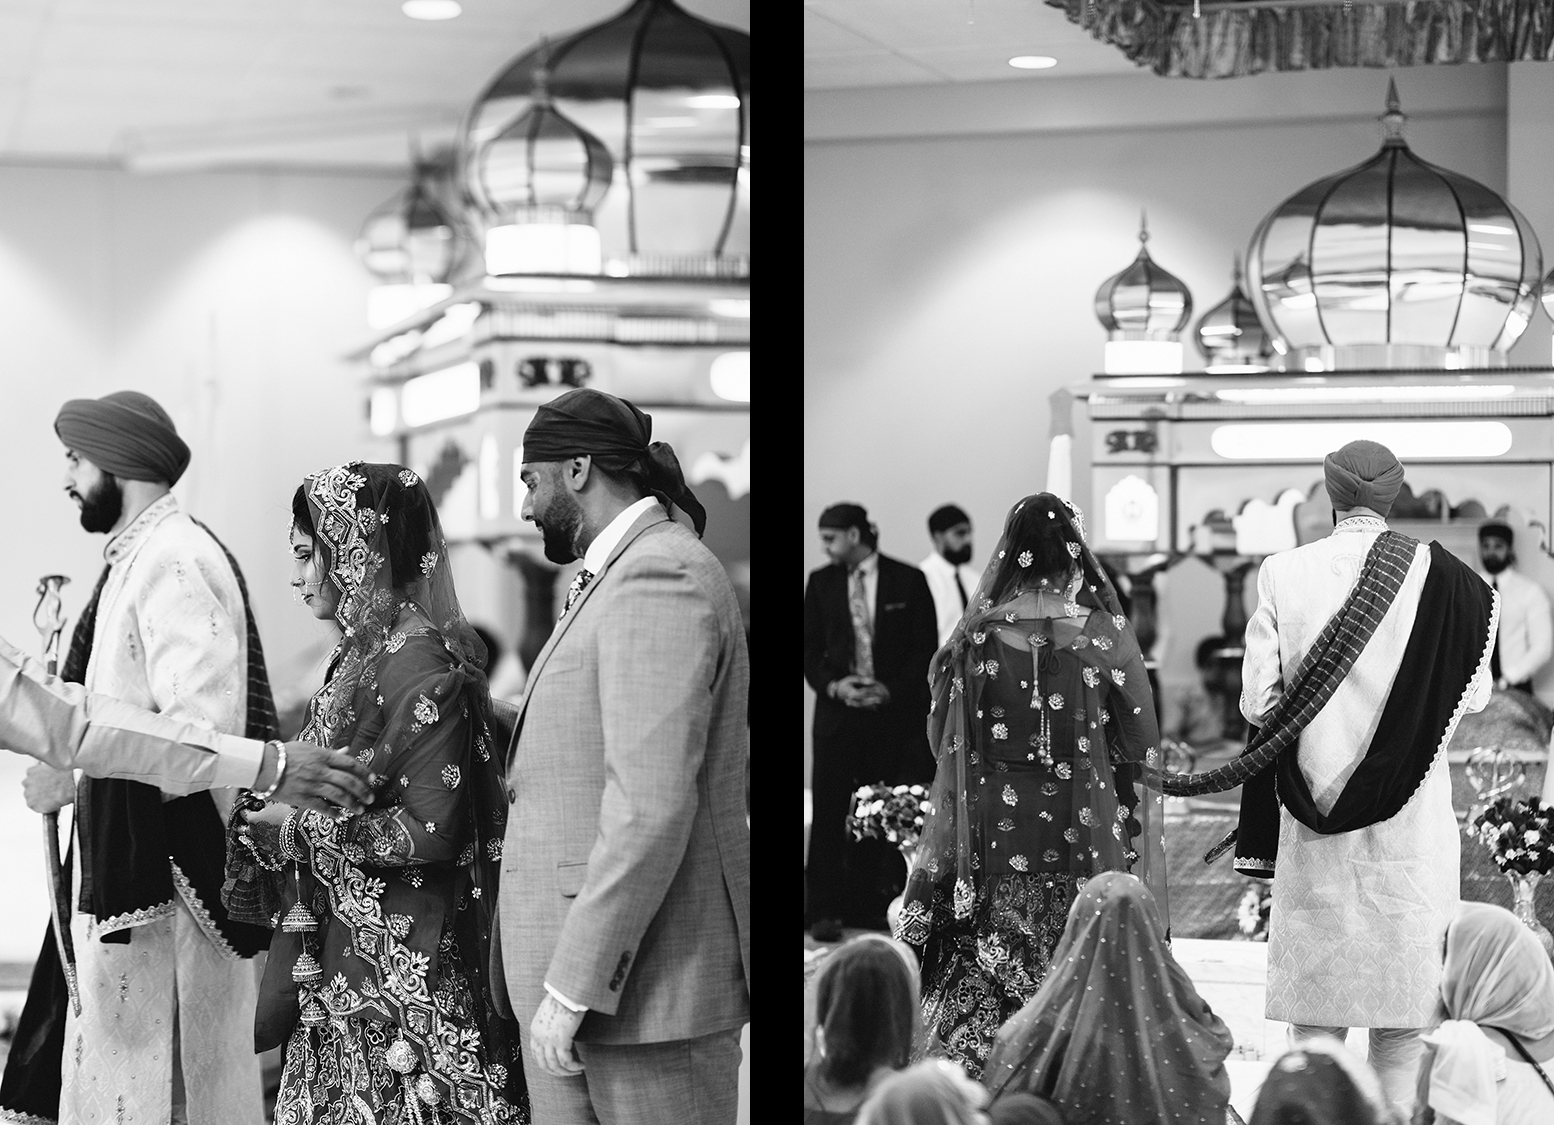 13-Toronto's-Best-Wedding-Photographers-Multicultural-wedding-specialty-ontario-port-perry-ceremony-at-temple-candid-documentary-photos-photojournalistic-sikh-wedding-intimate-special-tradition-groom-and-bride-together-bw.jpg